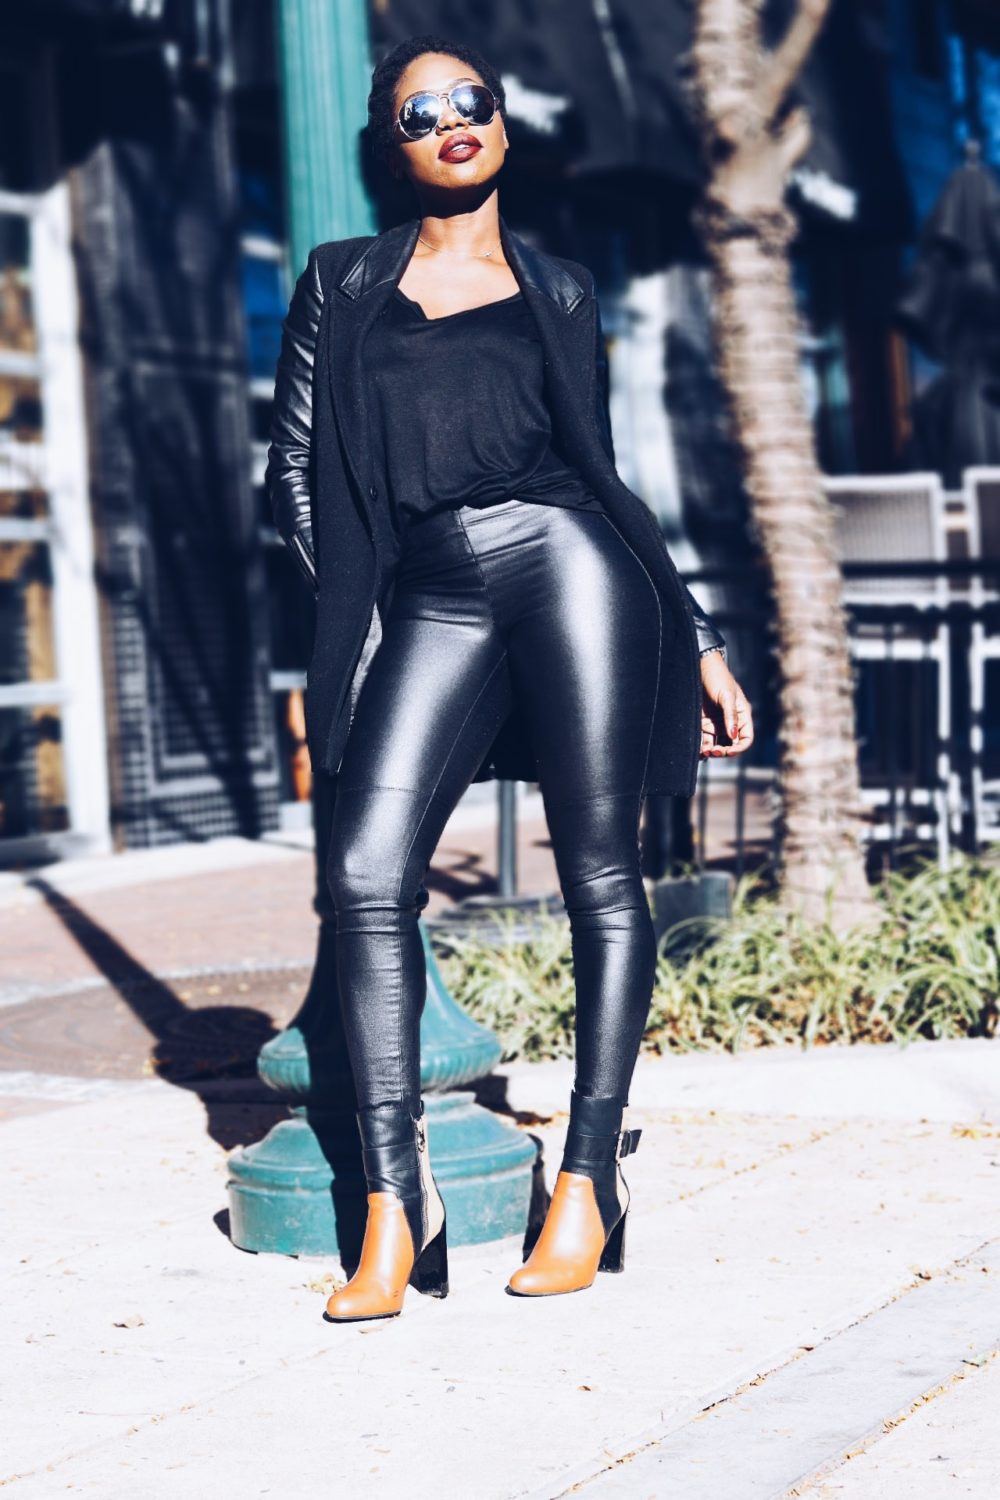 style-synopsis-black-coat-contrast-ankle-boots